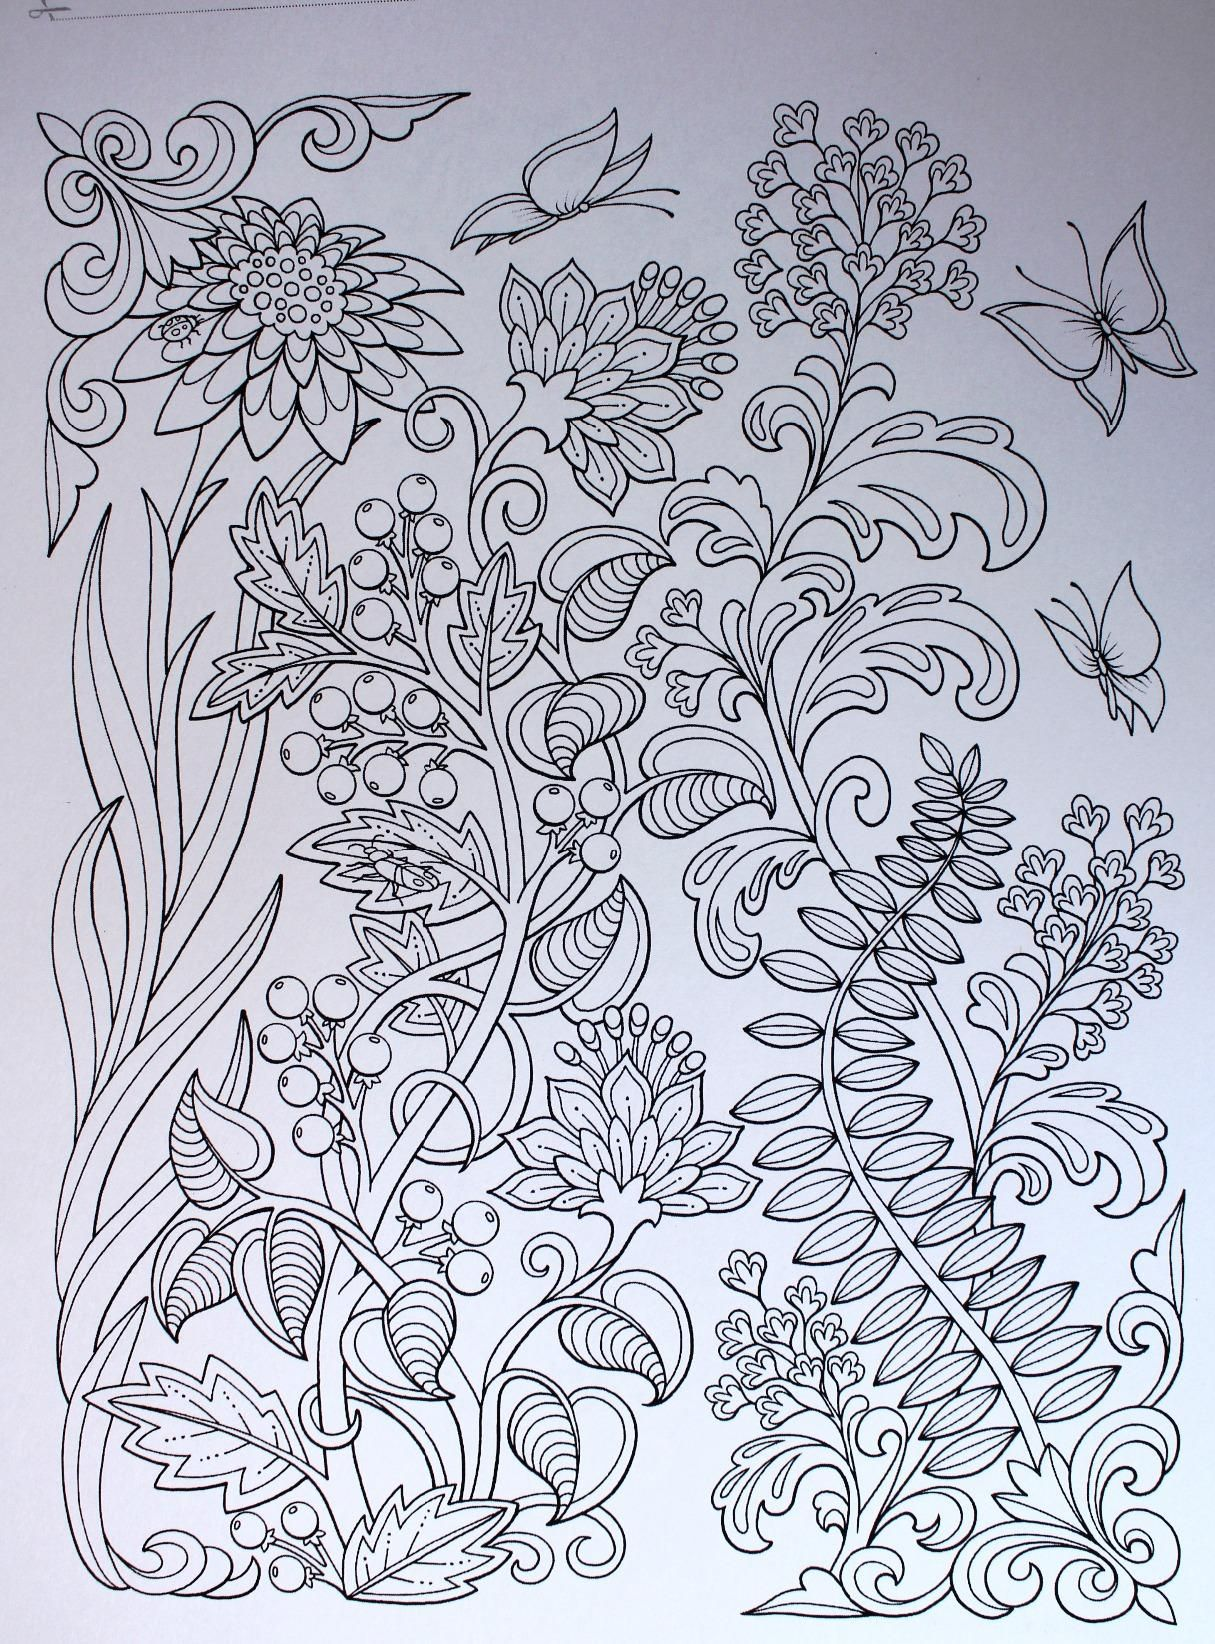 Amazon.com: Garden Paths Coloring Book: Inc. and Kathryn Marlin ...